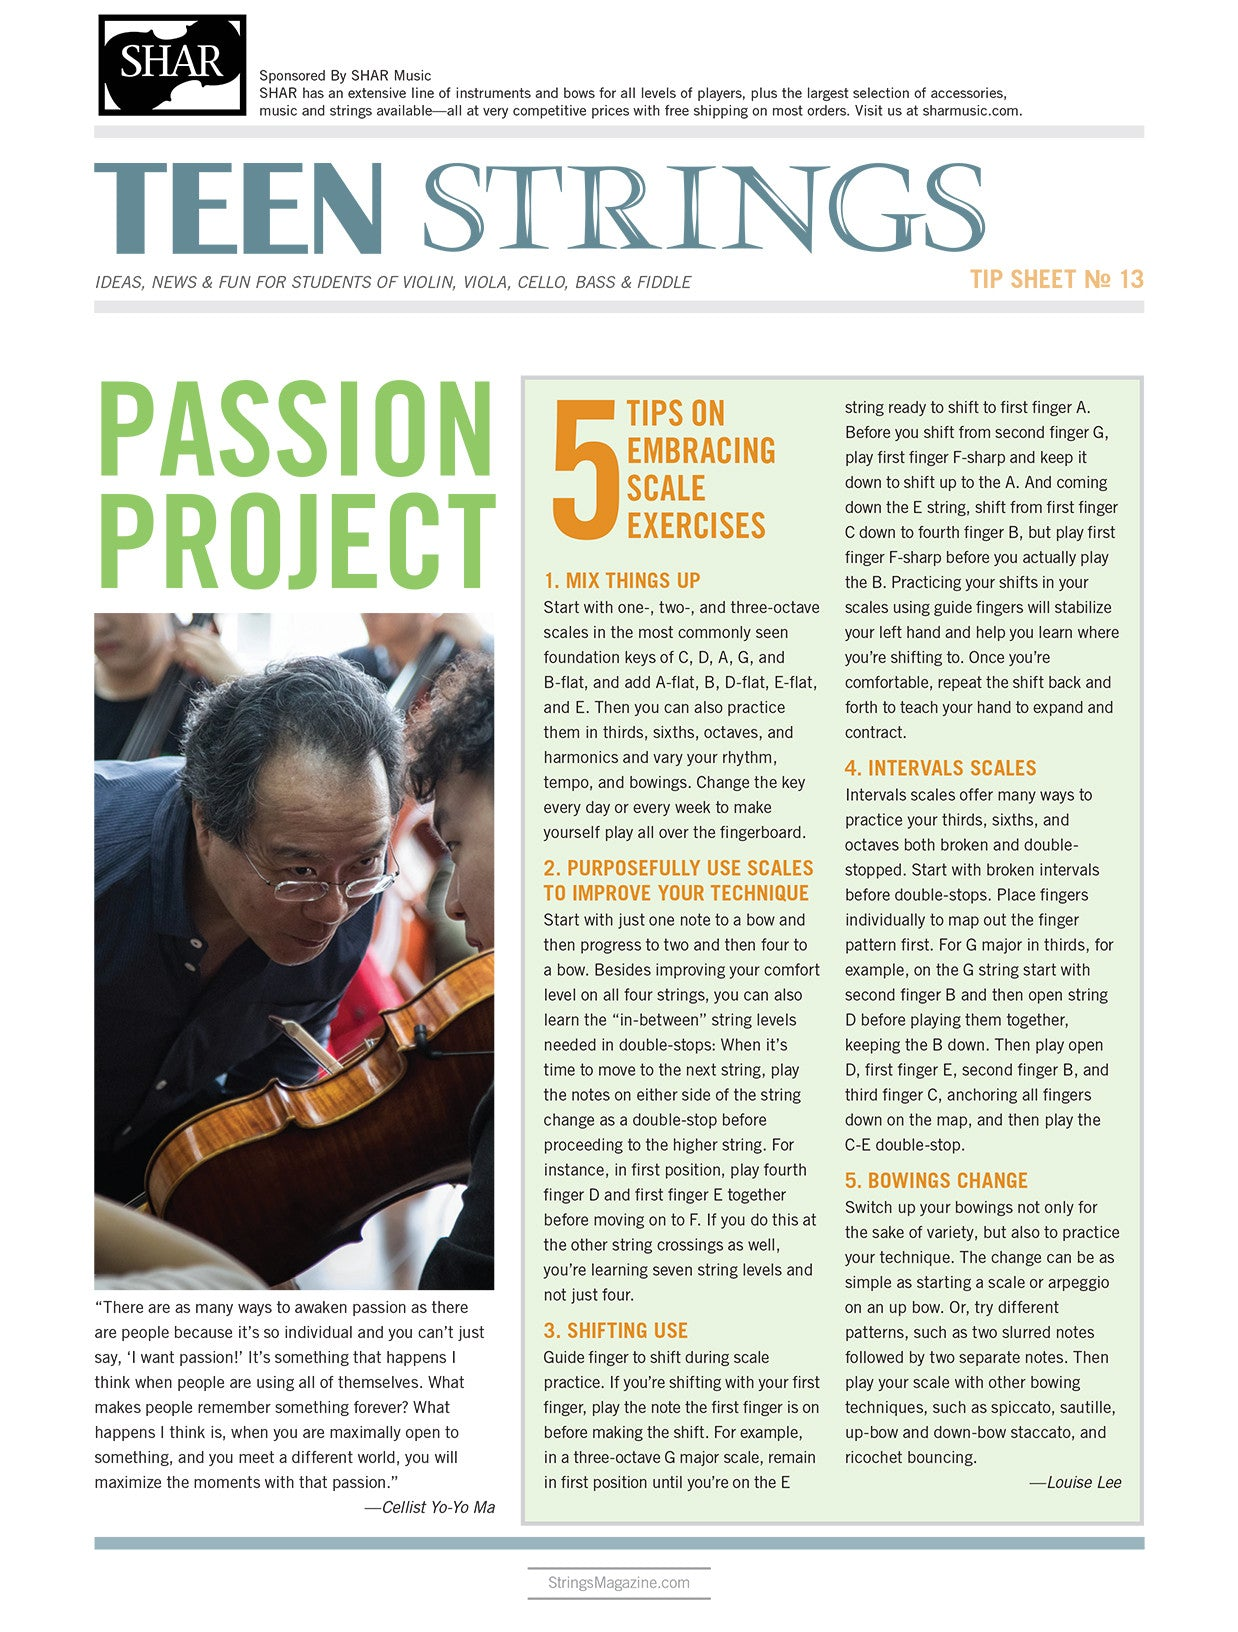 Teen Strings Tip Sheet #13: 5 Tips on Embracing Scale Exercises